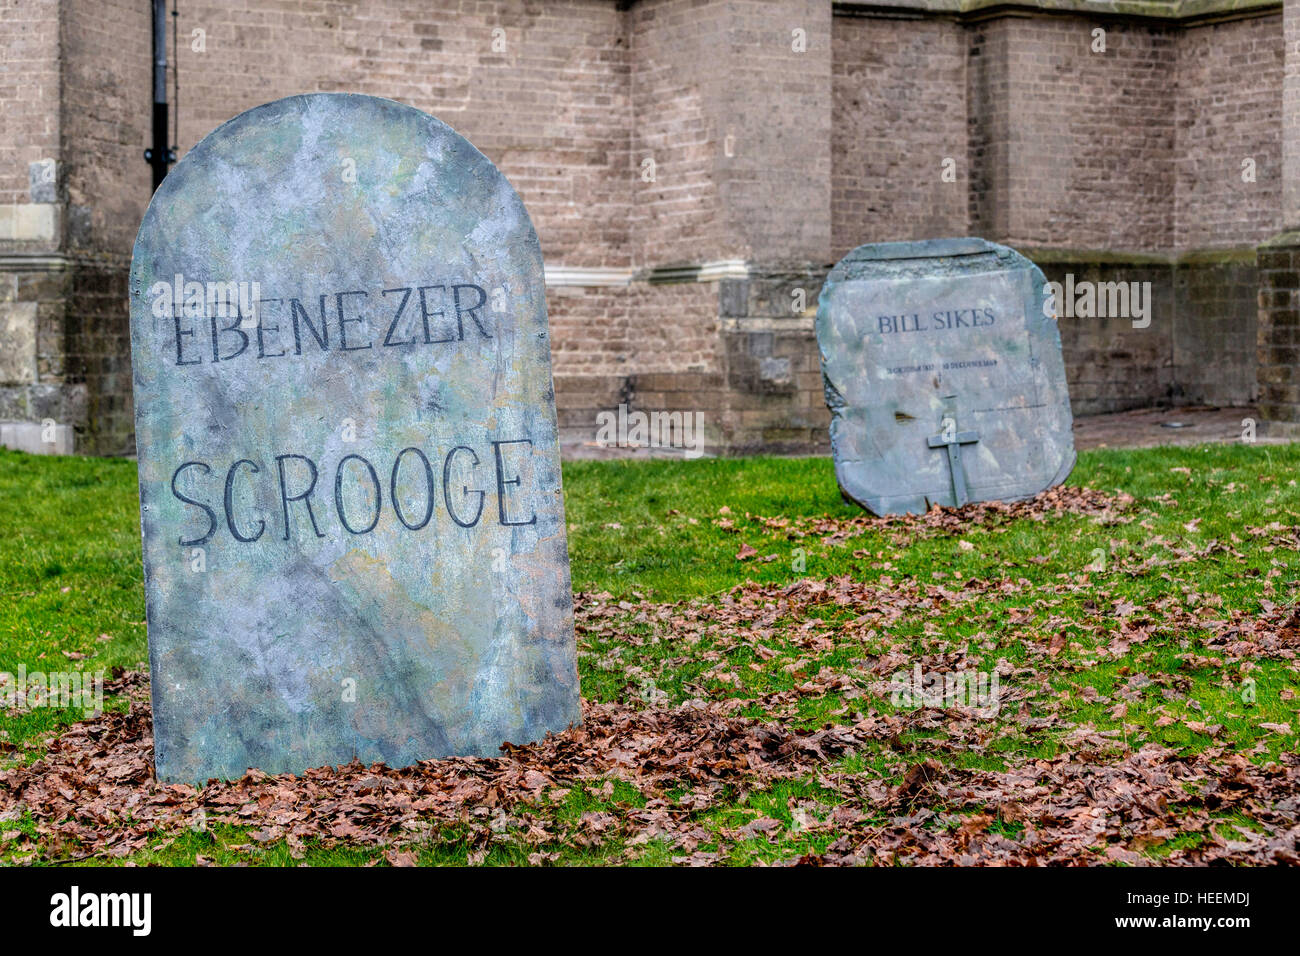 Fake headstones of Ebenezer Scrooge and Bill Sikes in the churchyard of Saint Nicholas Church at the Deventer Dickens - Stock Image